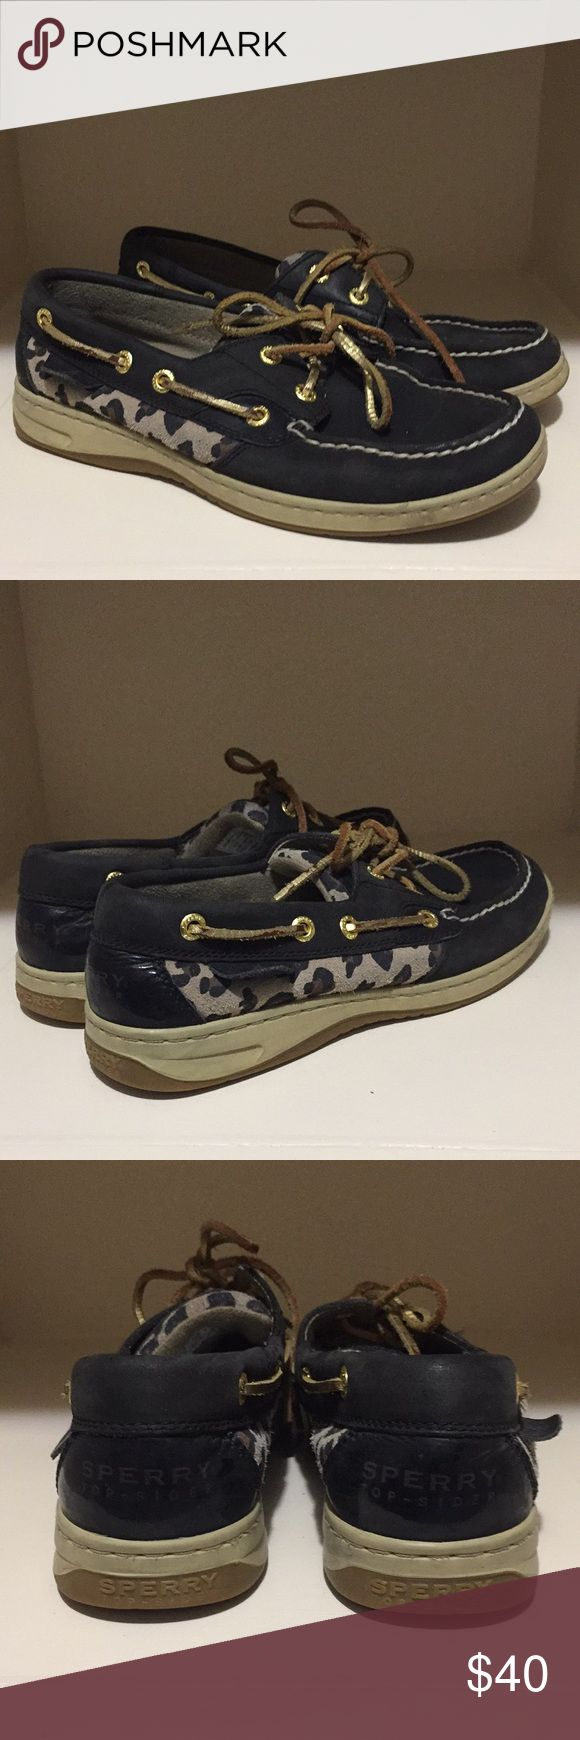 Sperry Top Sider In great condition! Sperry Top-Sider Shoes Flats & Loafers